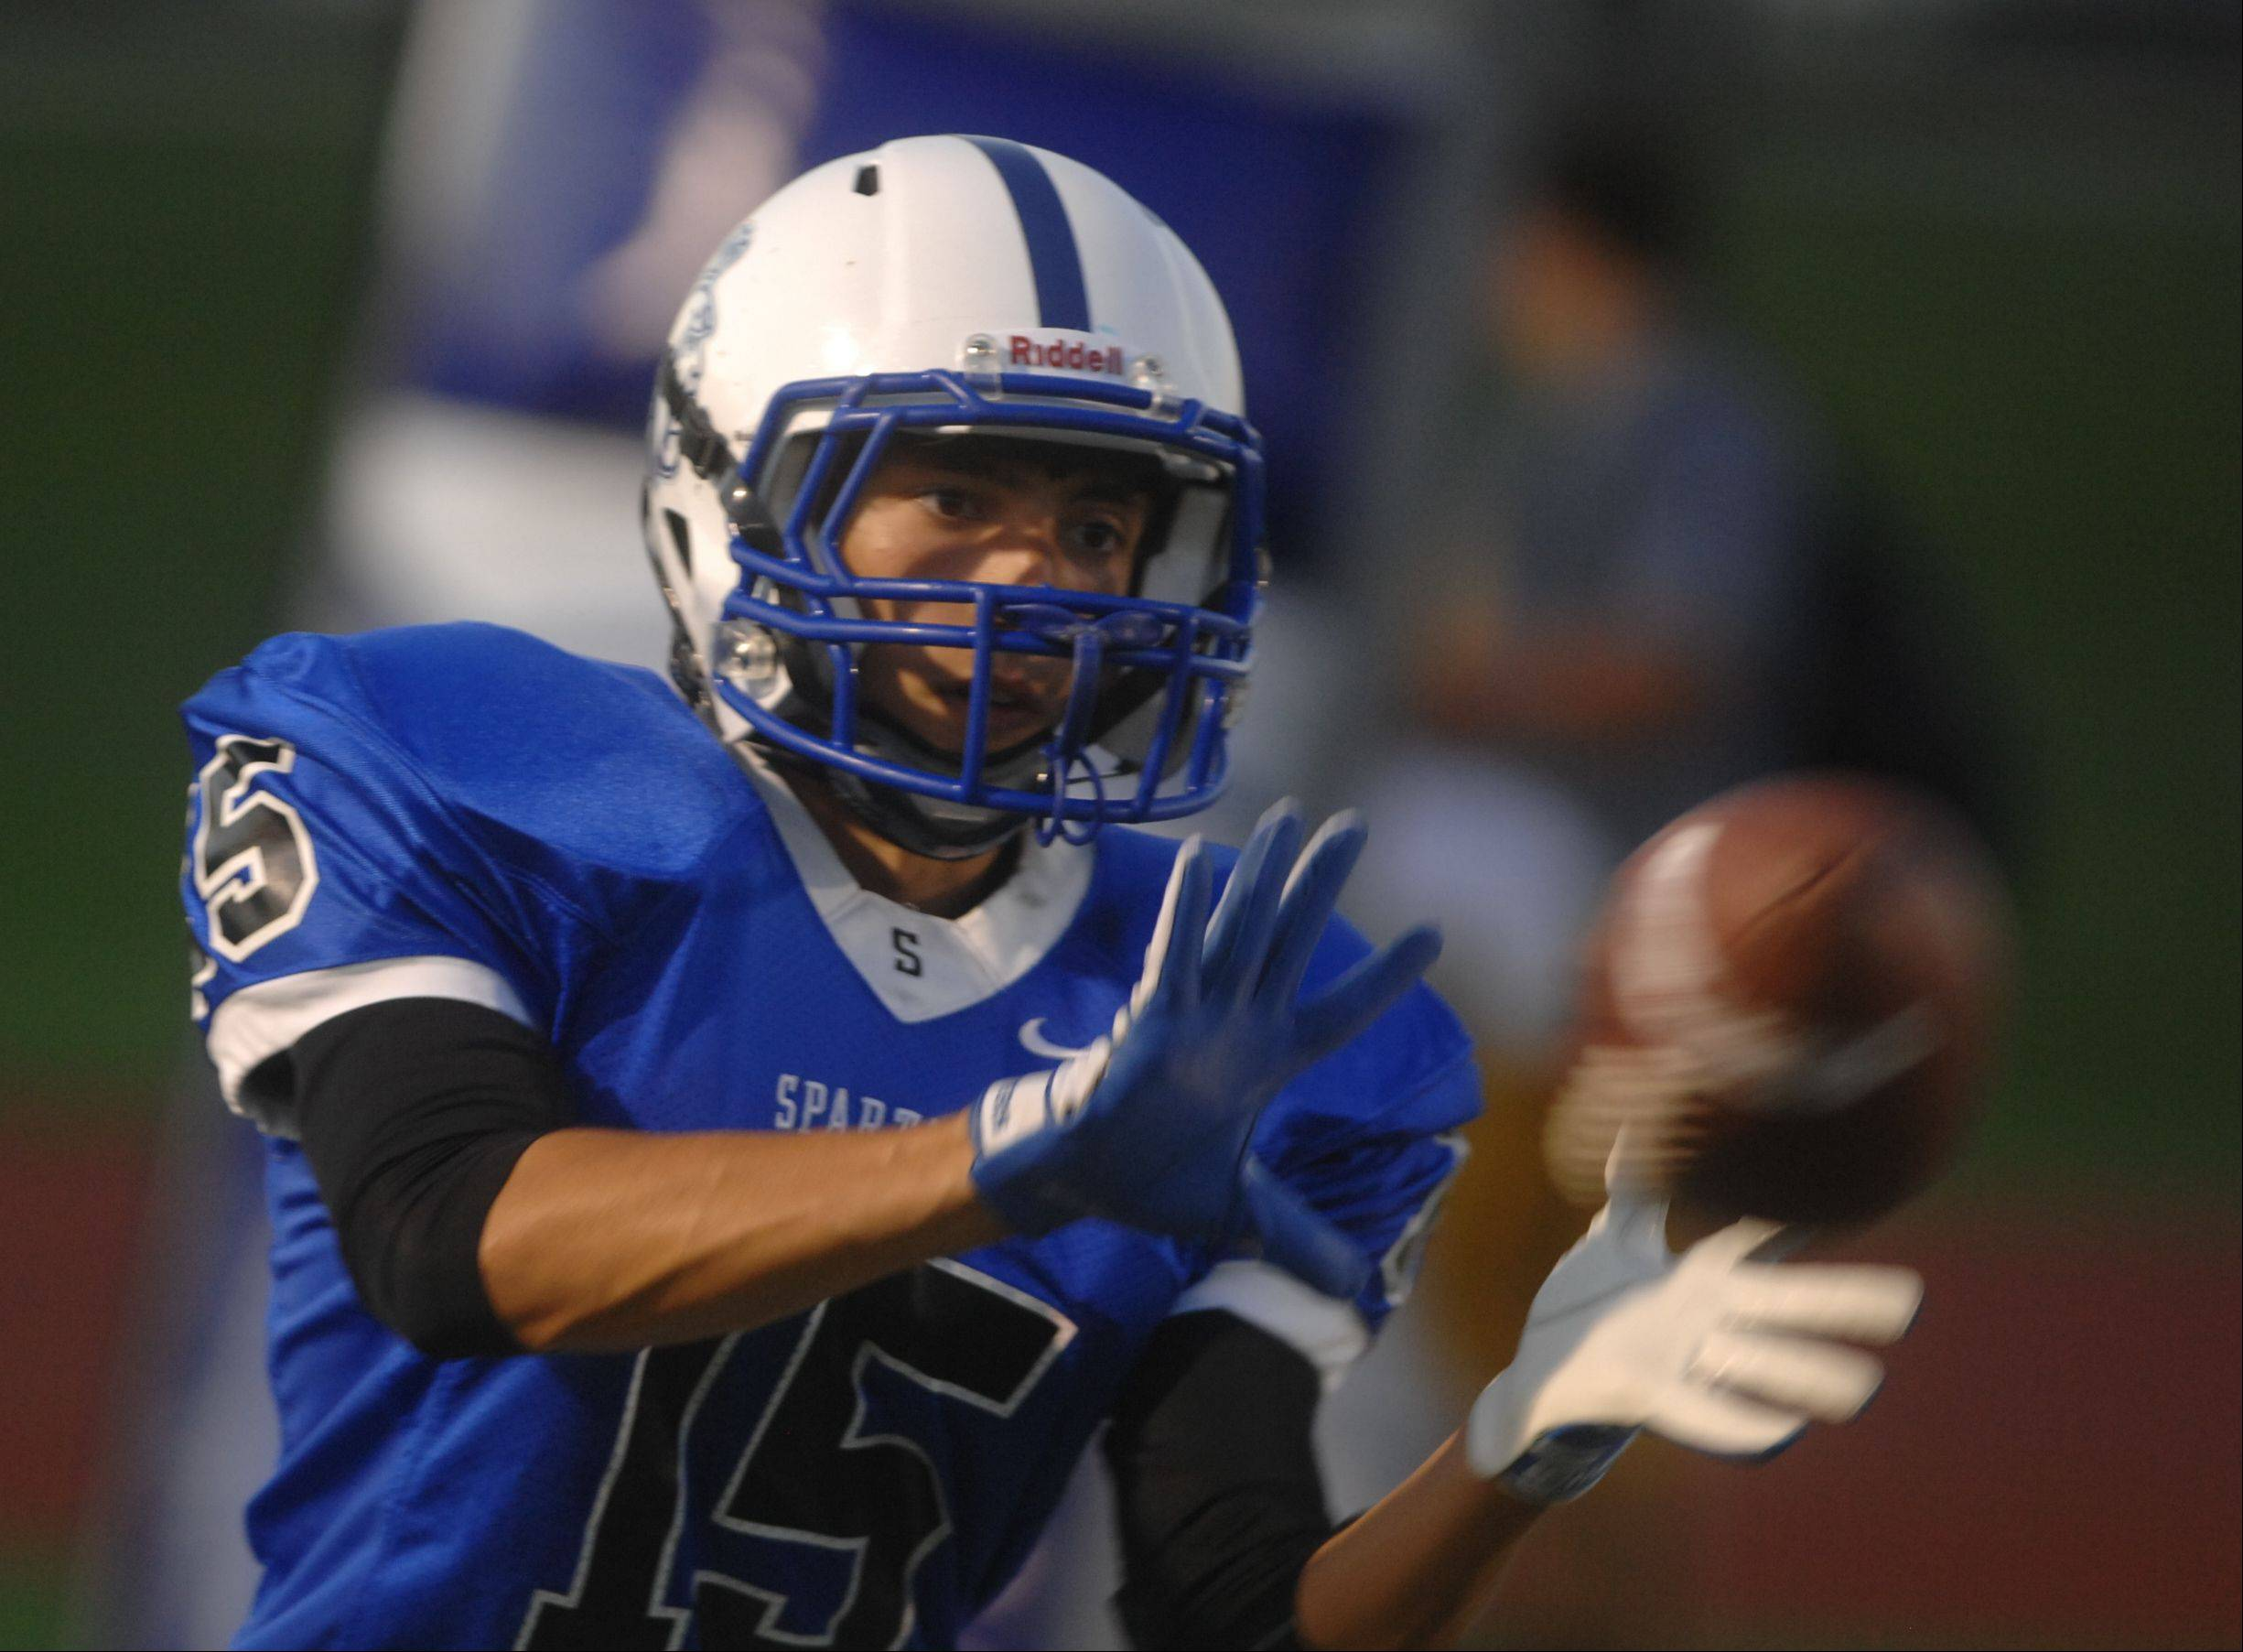 Week -4- Photos from the Montini vs. St. Francis football game Friday, September 14, 2012.